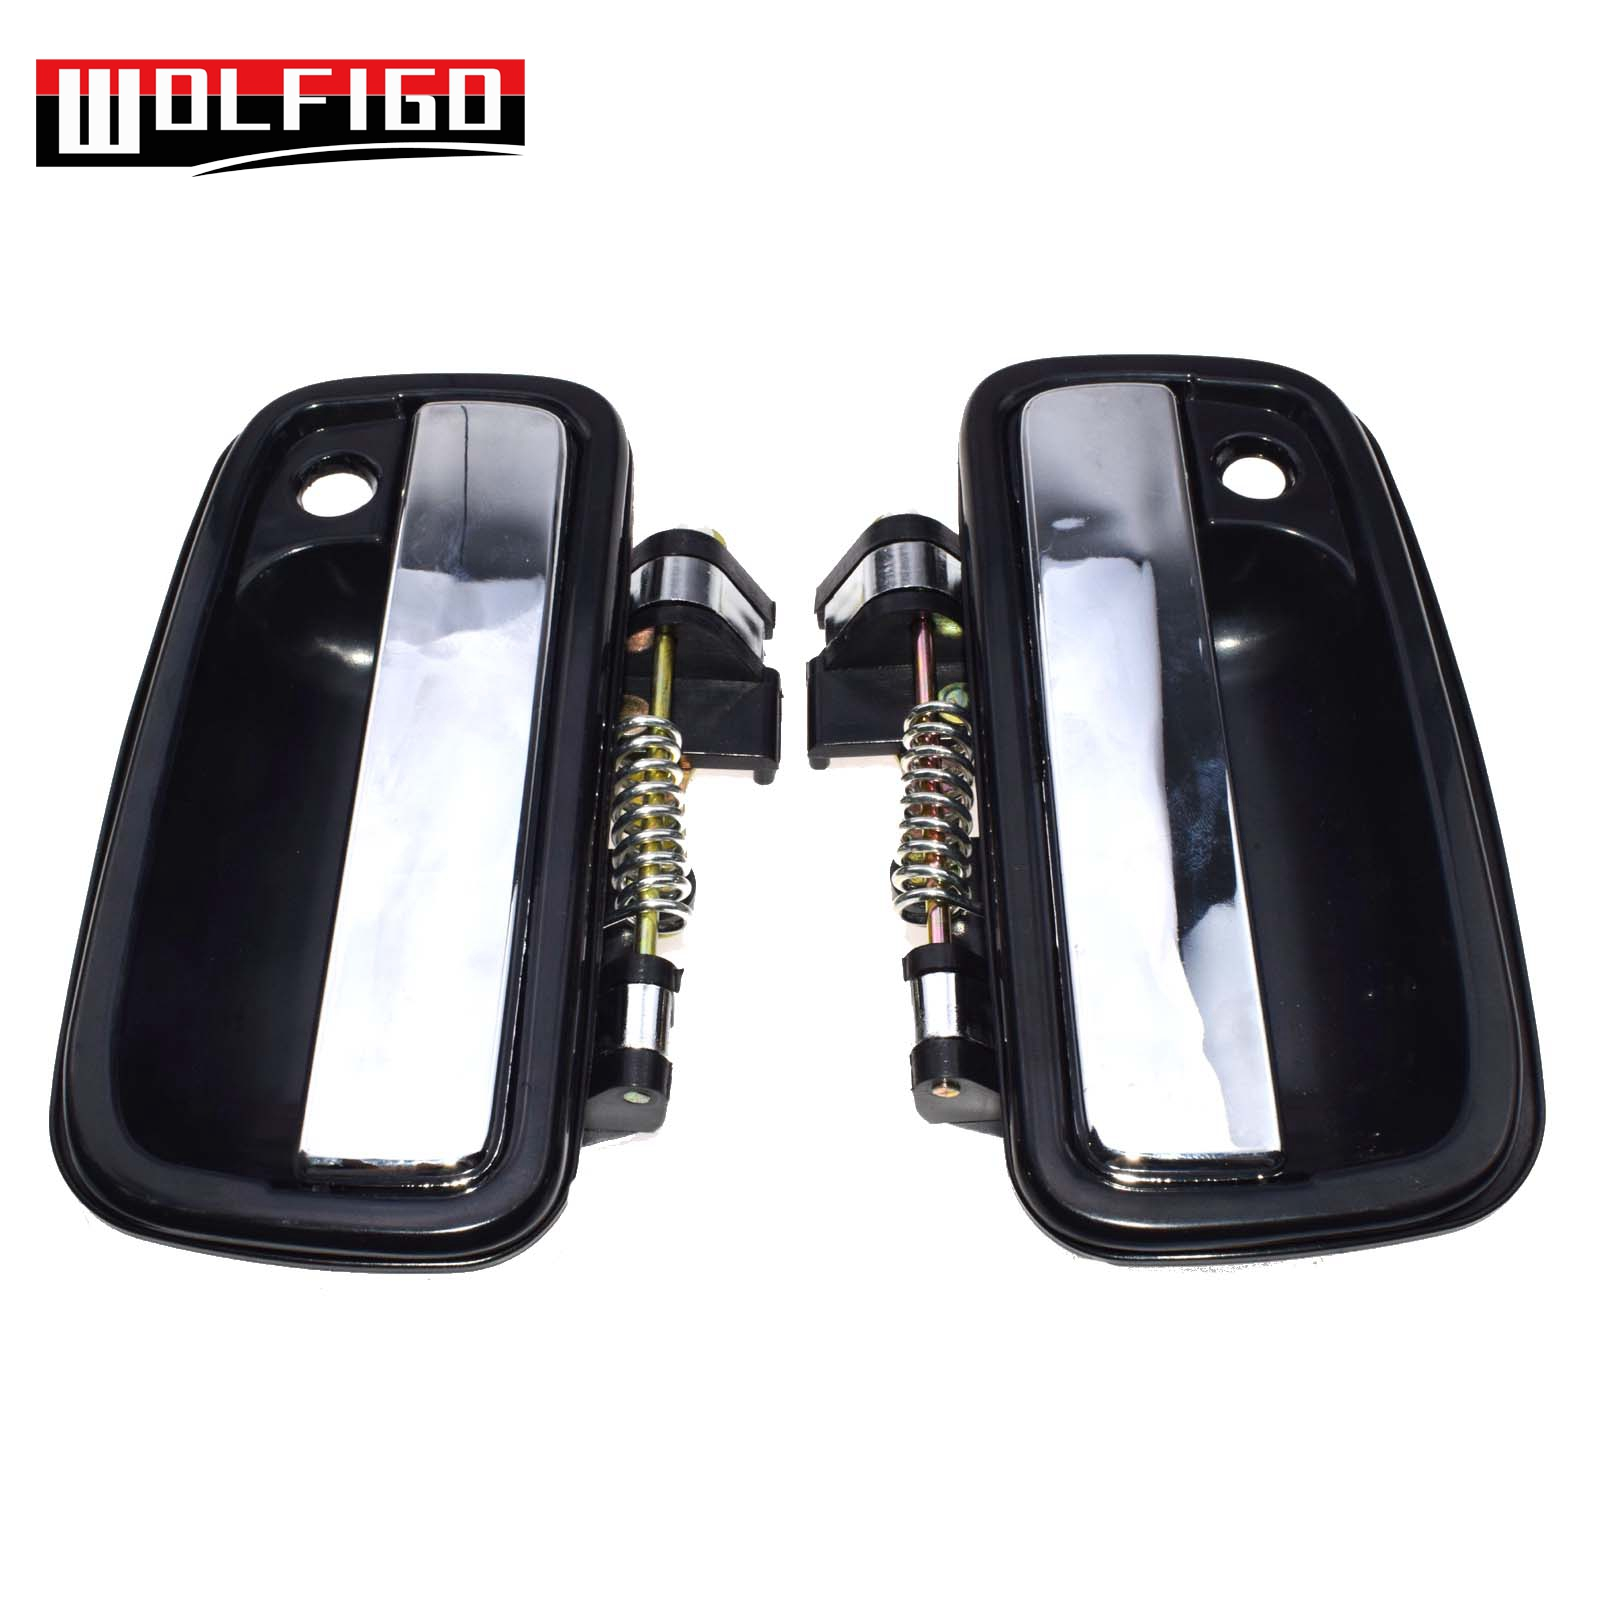 95-04 Toyota Tacoma Front Left Driver Side Outside Door Handle Chrome Black